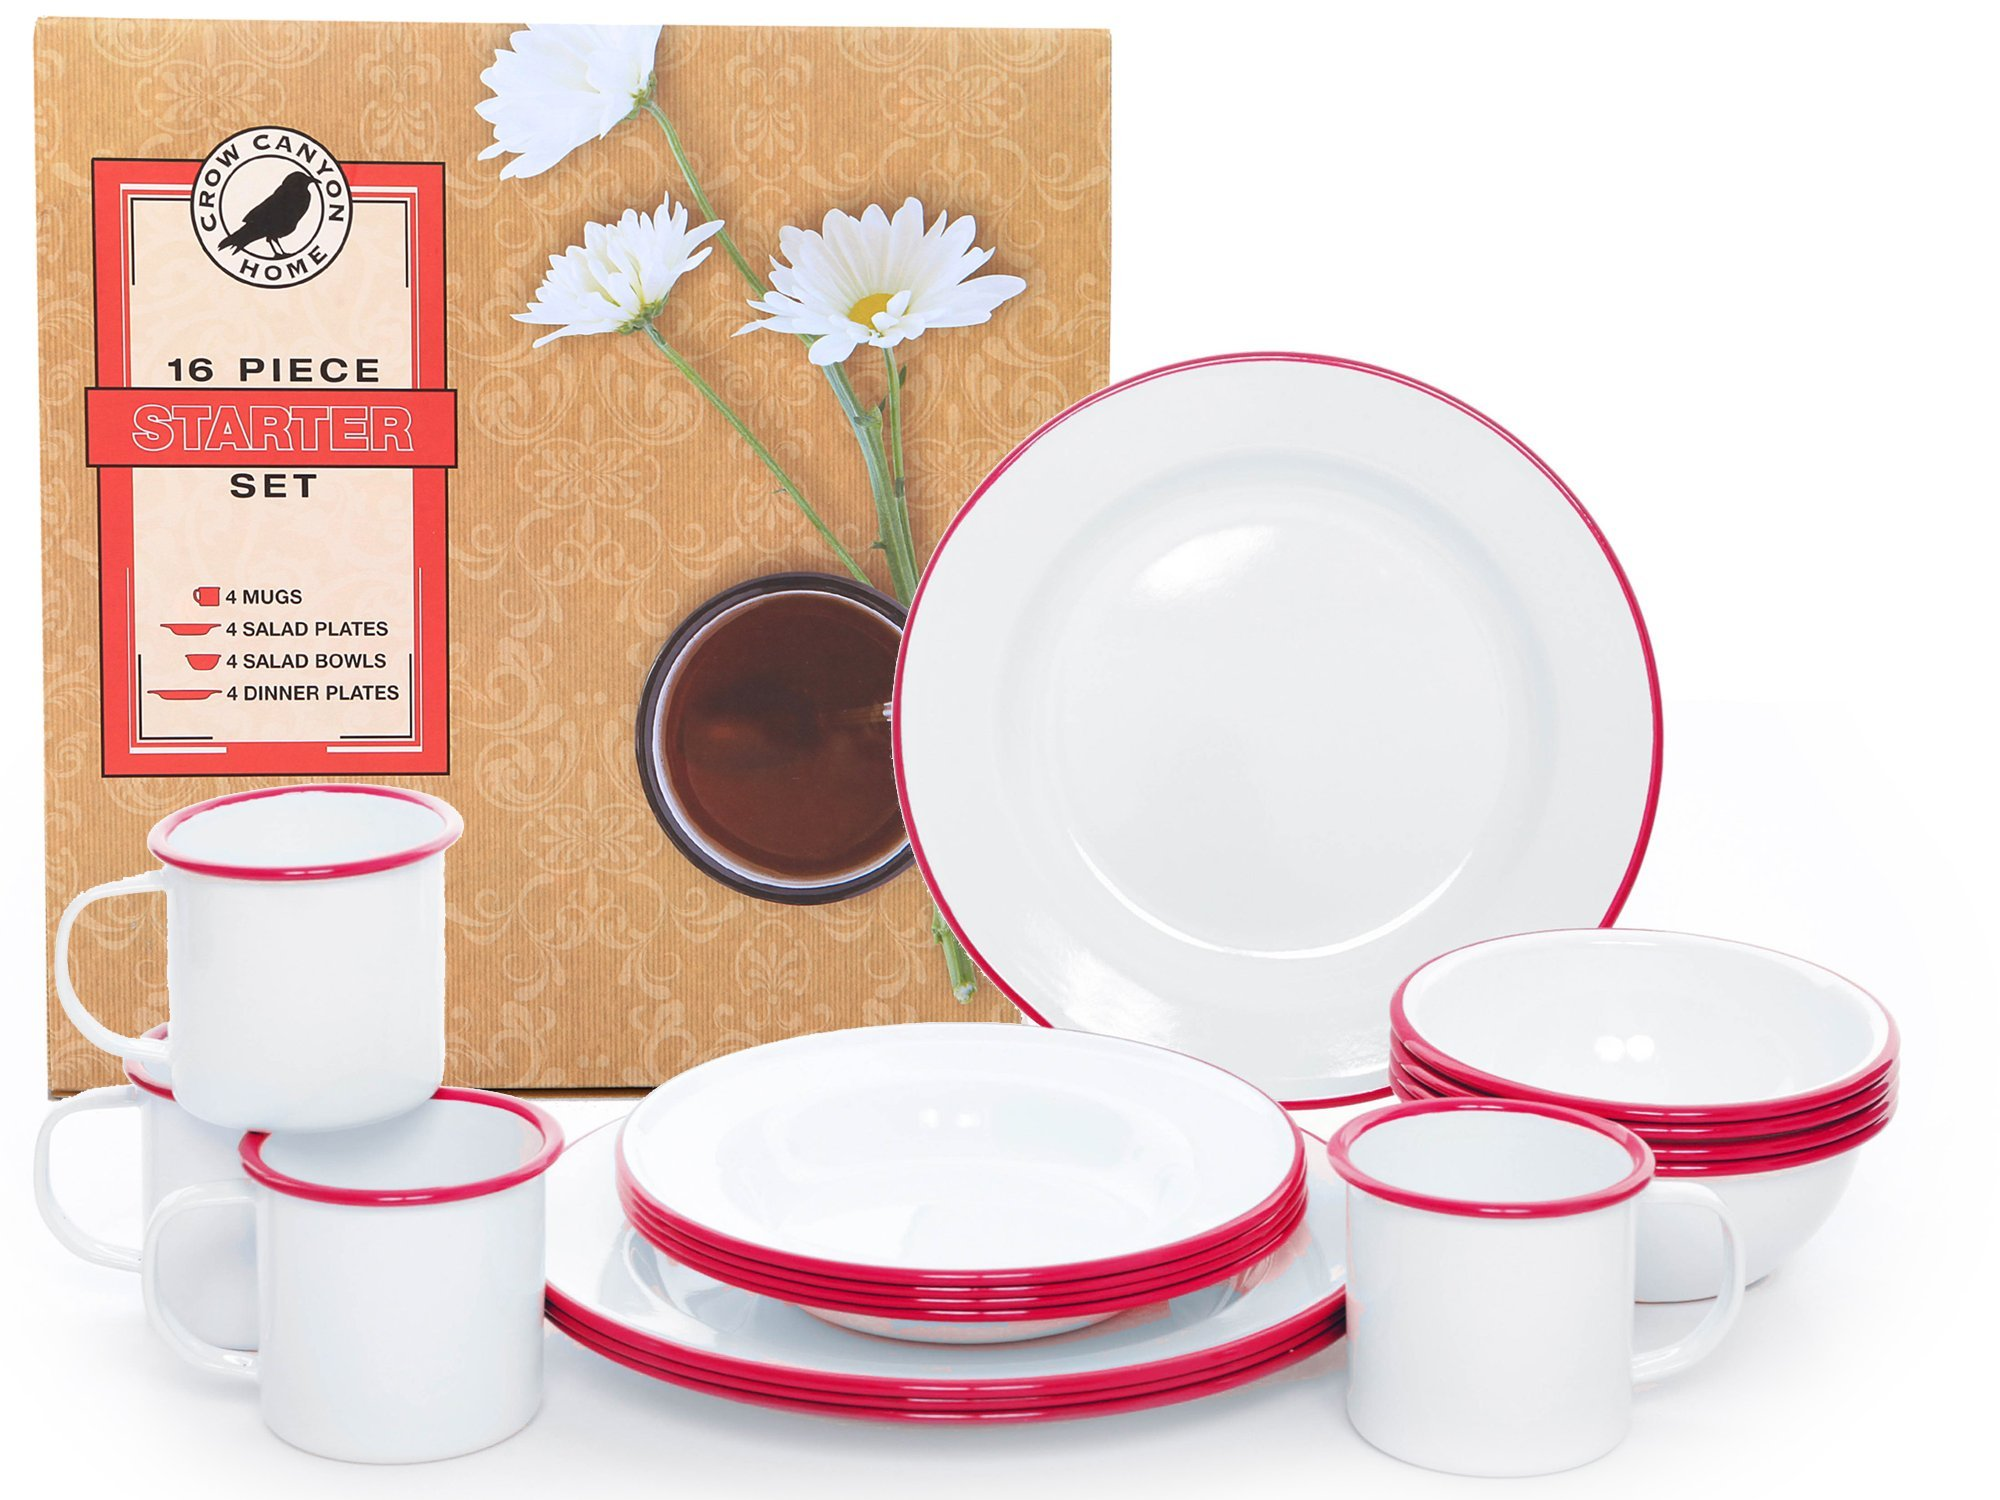 Enamelware 16 Piece Dinnerware Starter Set - Solid White with Red Trim by Crow Canyon Home